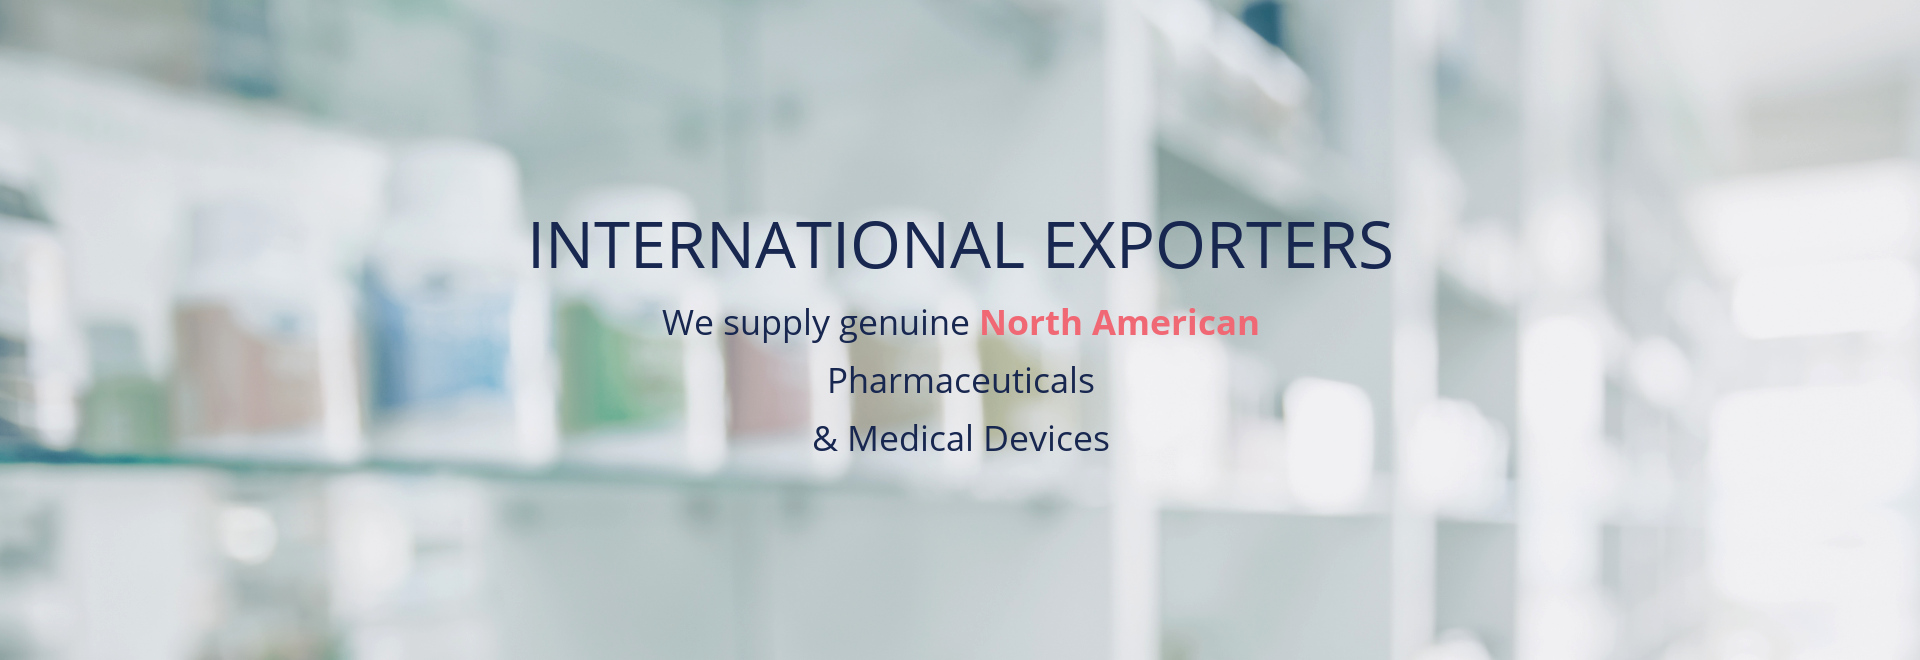 Internation Exporters. We supply genuine North American Pharmaceuticals and Medical Devices